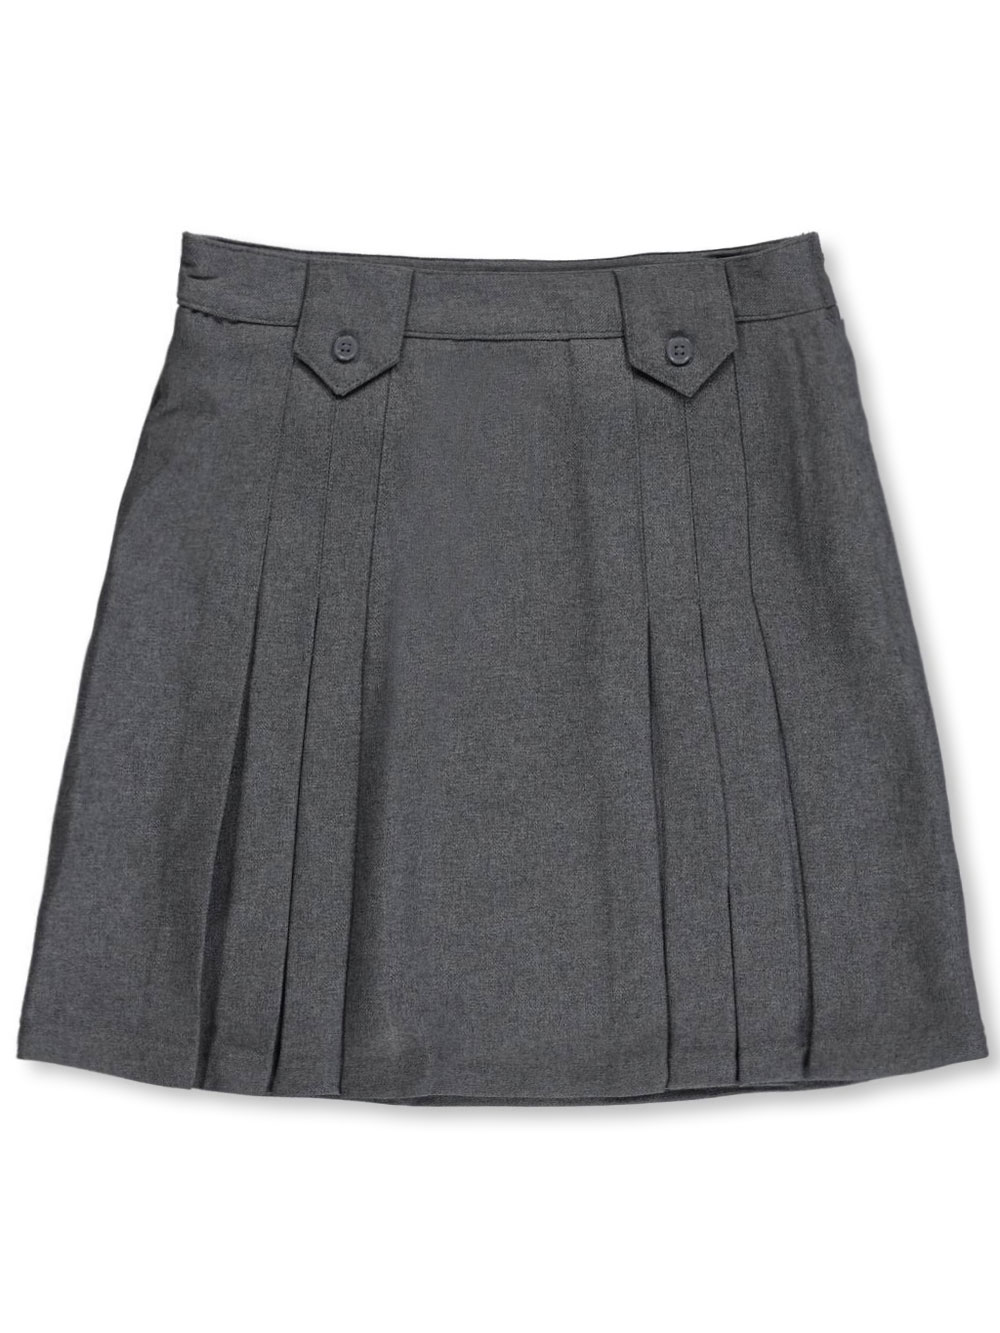 Image of French Toast School Uniform Big Girls Pleat and Tab Skirt Sizes 7  20  gray 20